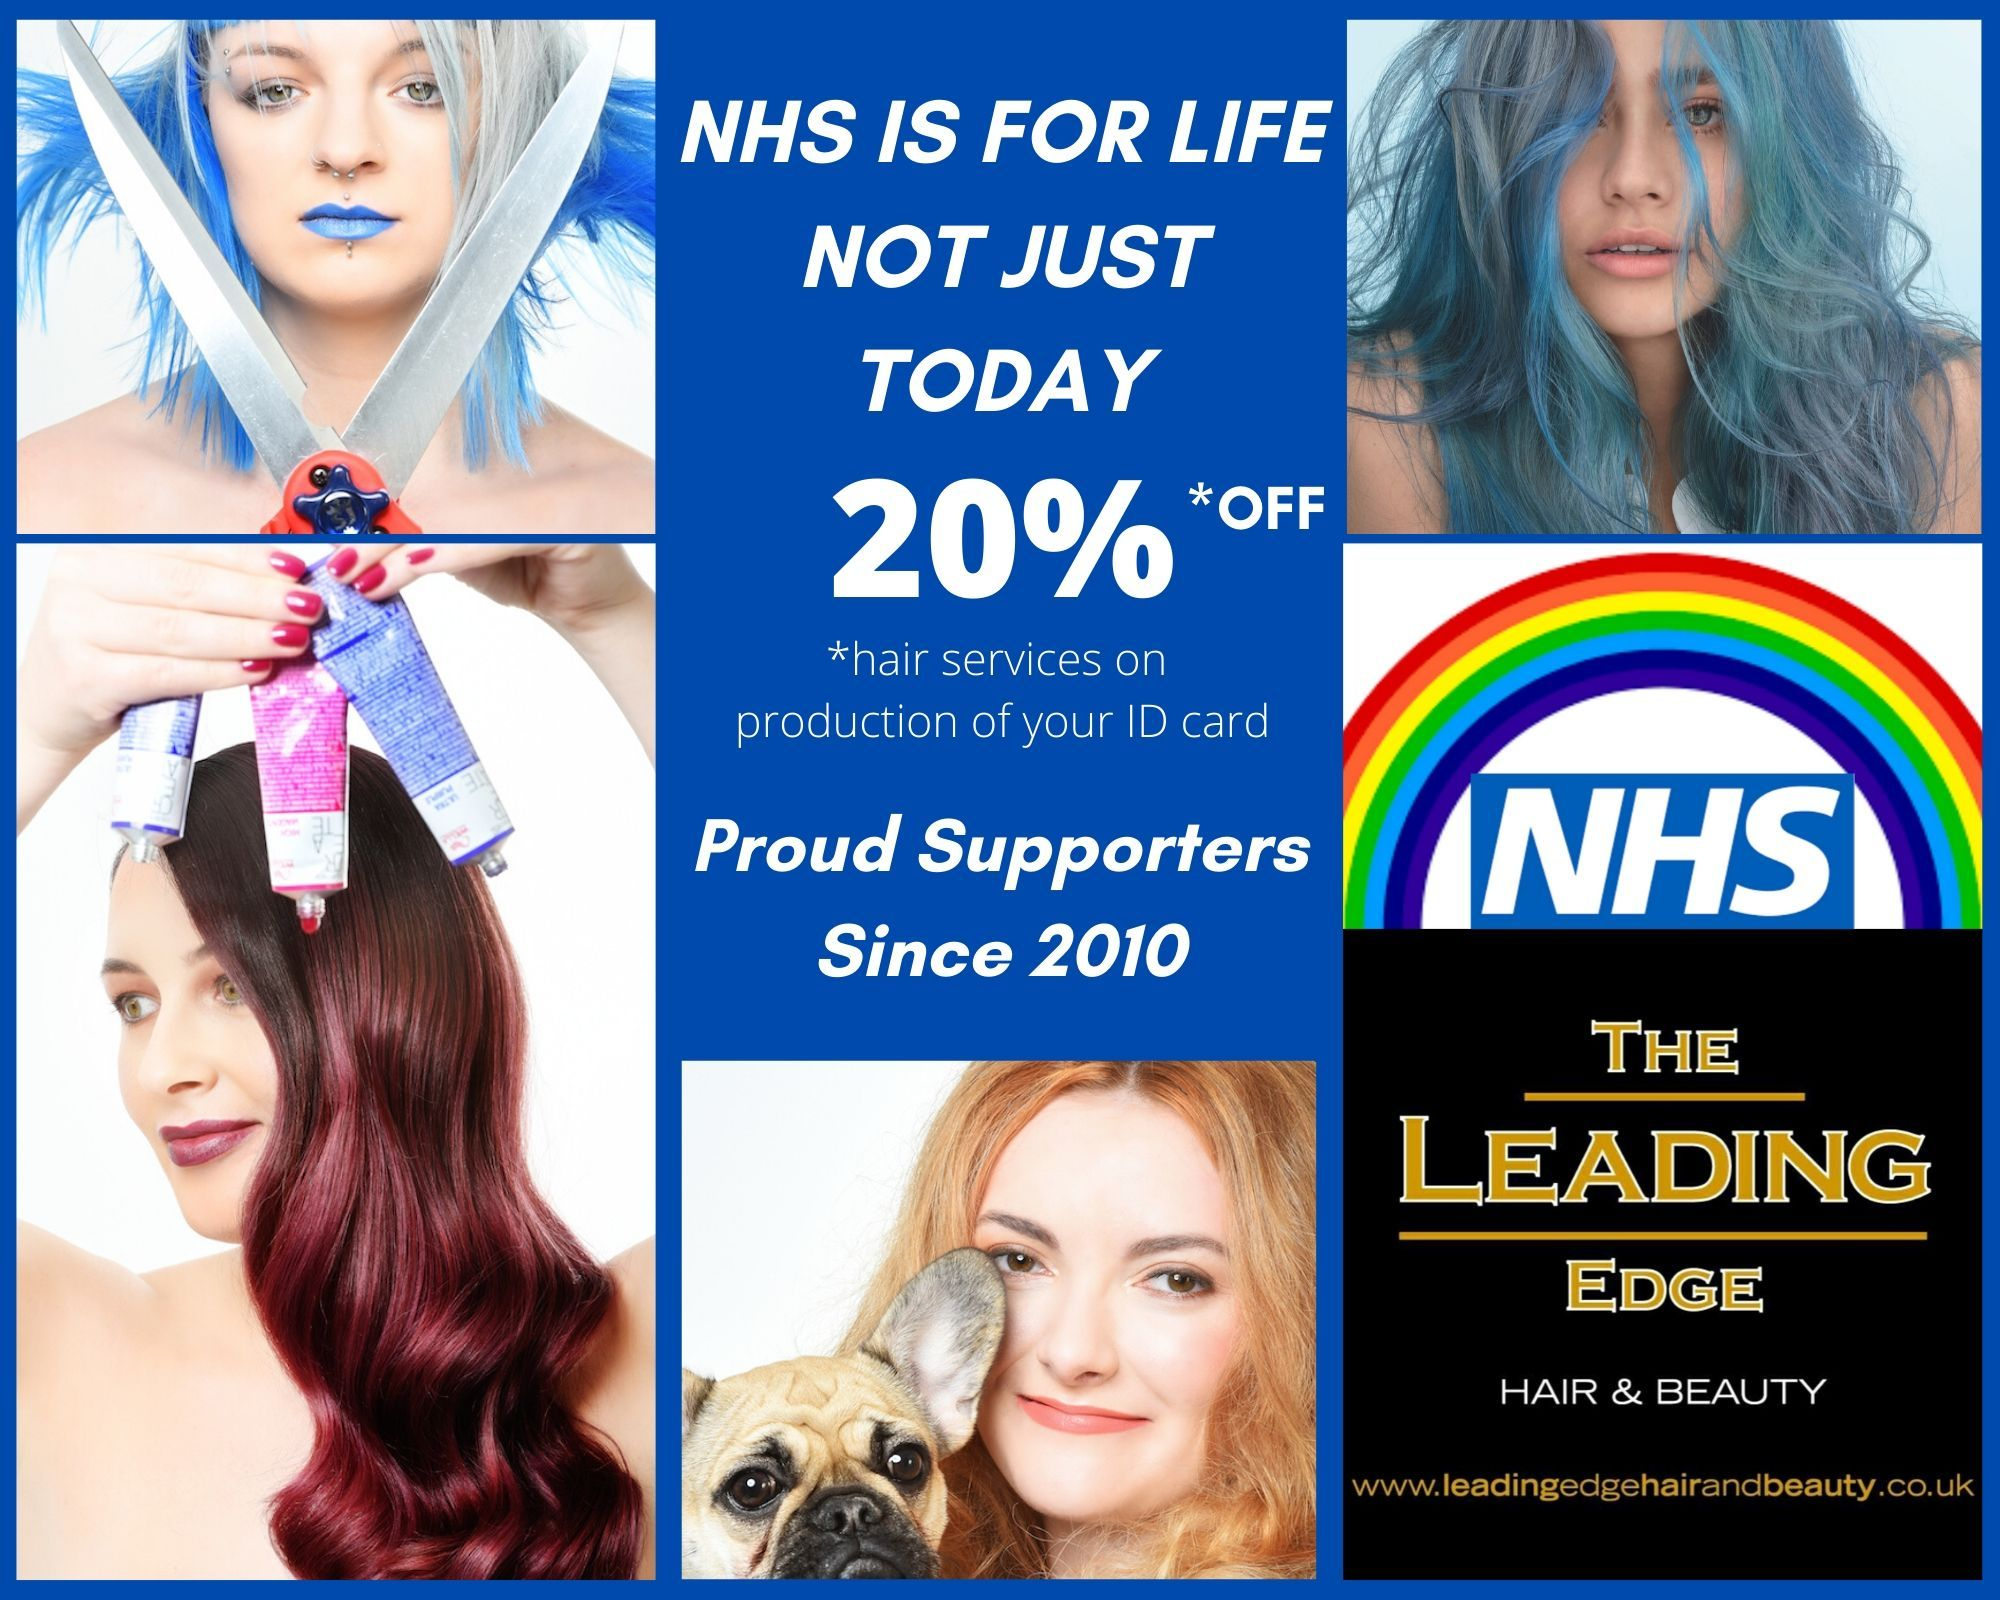 NHS Is For Life Not Just Today